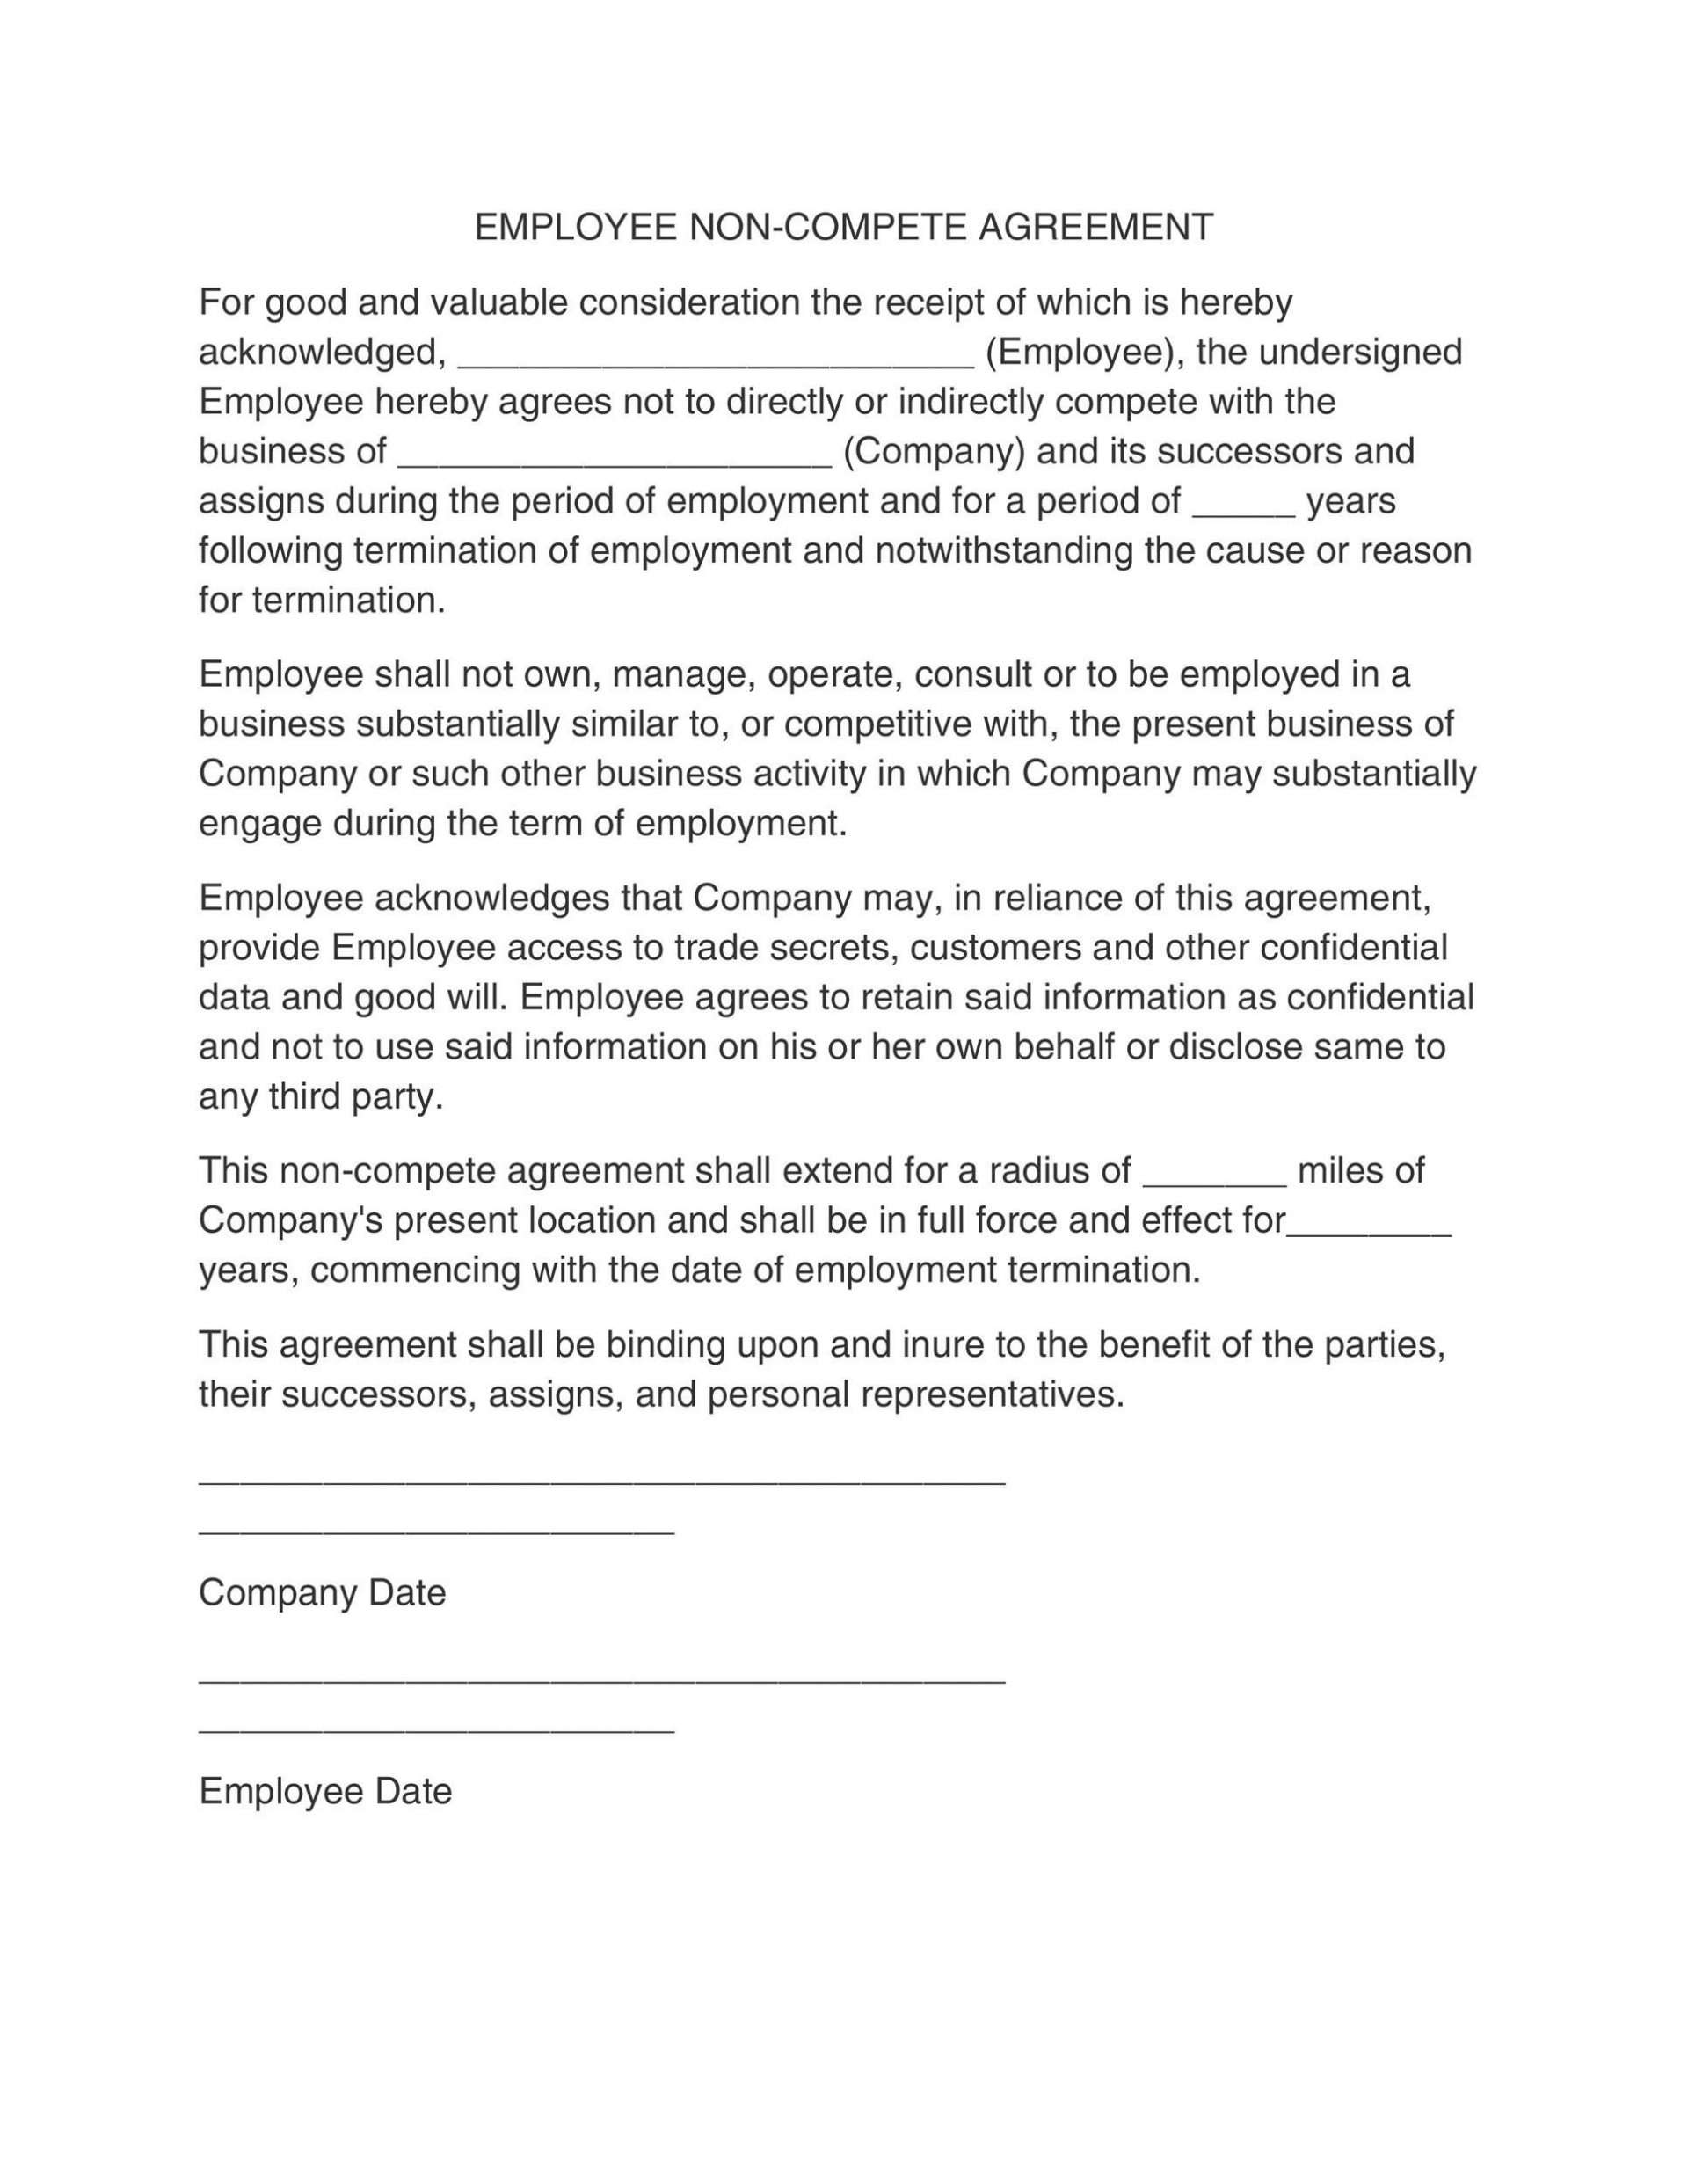 006 Unique Employee Non Compete Agreement Template Photo  Free Confidentiality Non-compete Disclosure1920